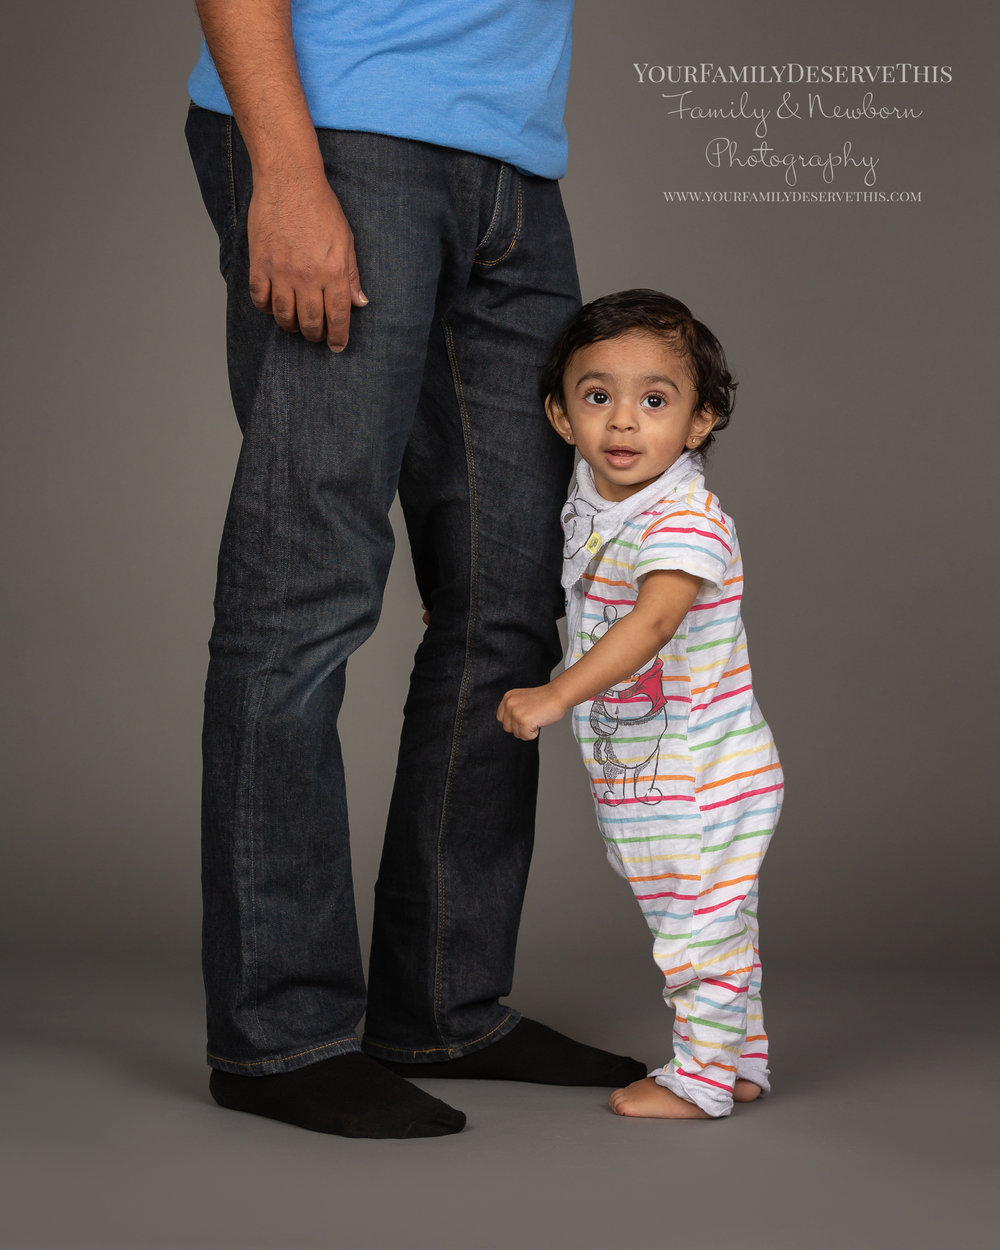 One day I'll be as tall as my Daddy, but for now I'm just perfect for a one year old. yourfamilydeservethis.com